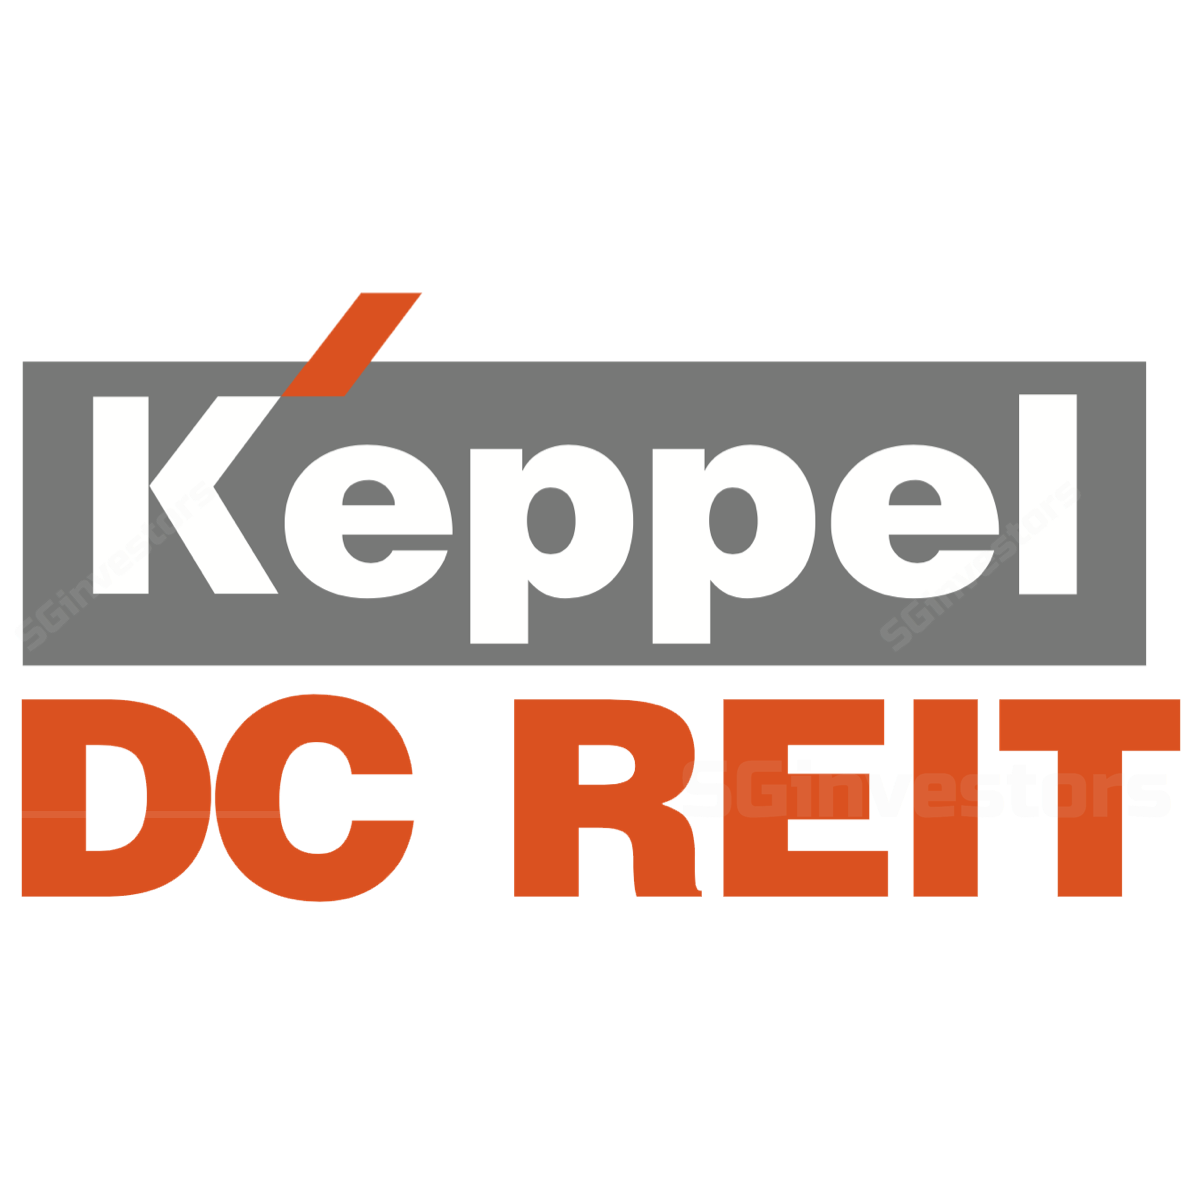 Keppel DC REIT - DBS Vickers 2017-10-17: More Acquisitions In The Pipeline